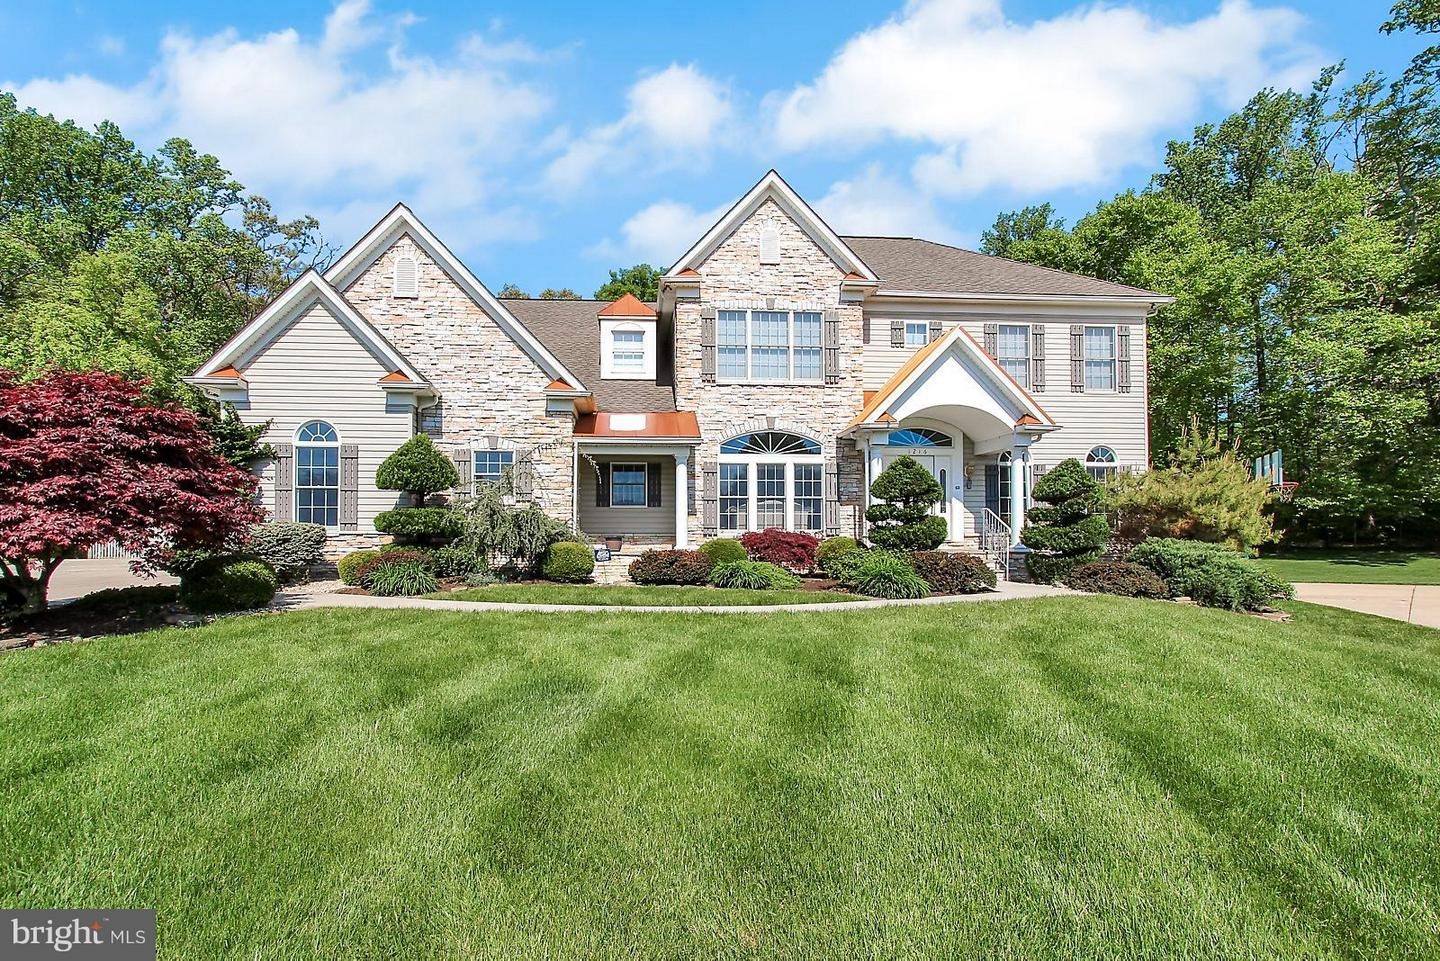 Other Residential for Sale at 1216 Bluebird Court W Bel Air, Maryland 21015 United States